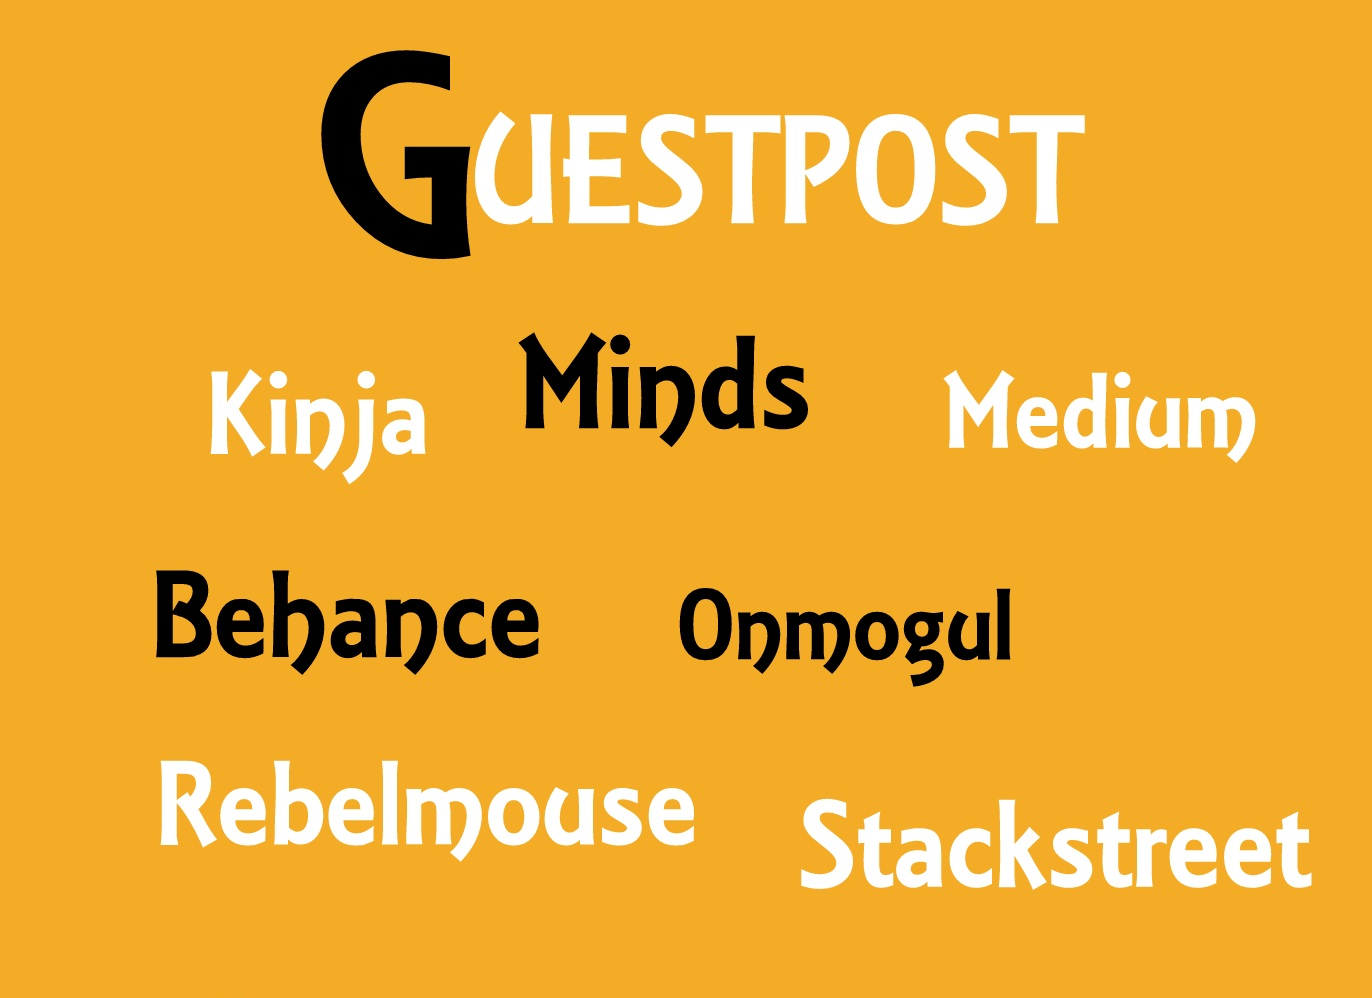 Publish your Guest post on Rebelmouse, Medium,  Behance, Stackstreet,  Minds, Kinja, Onmogul